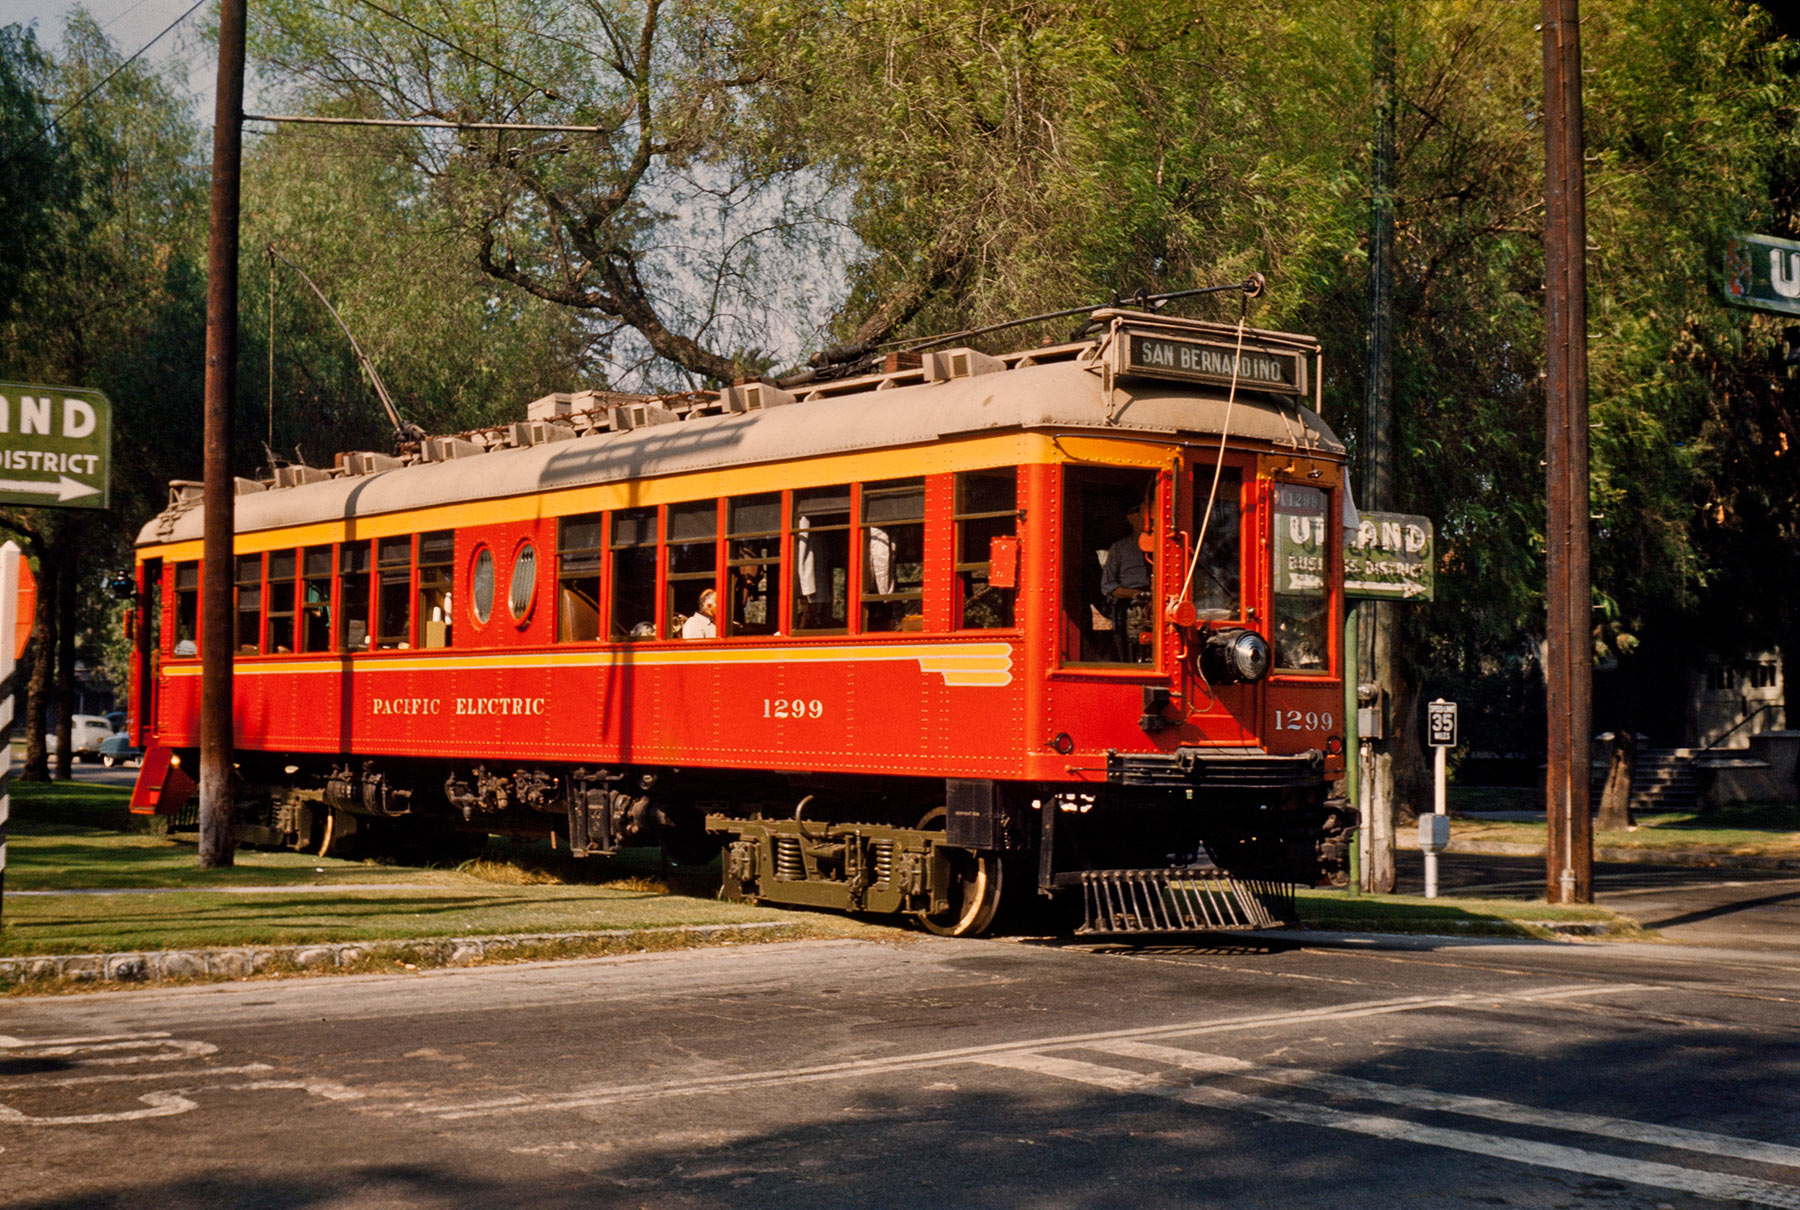 1299 in Upland - Pacific Electric Railway Historical Society